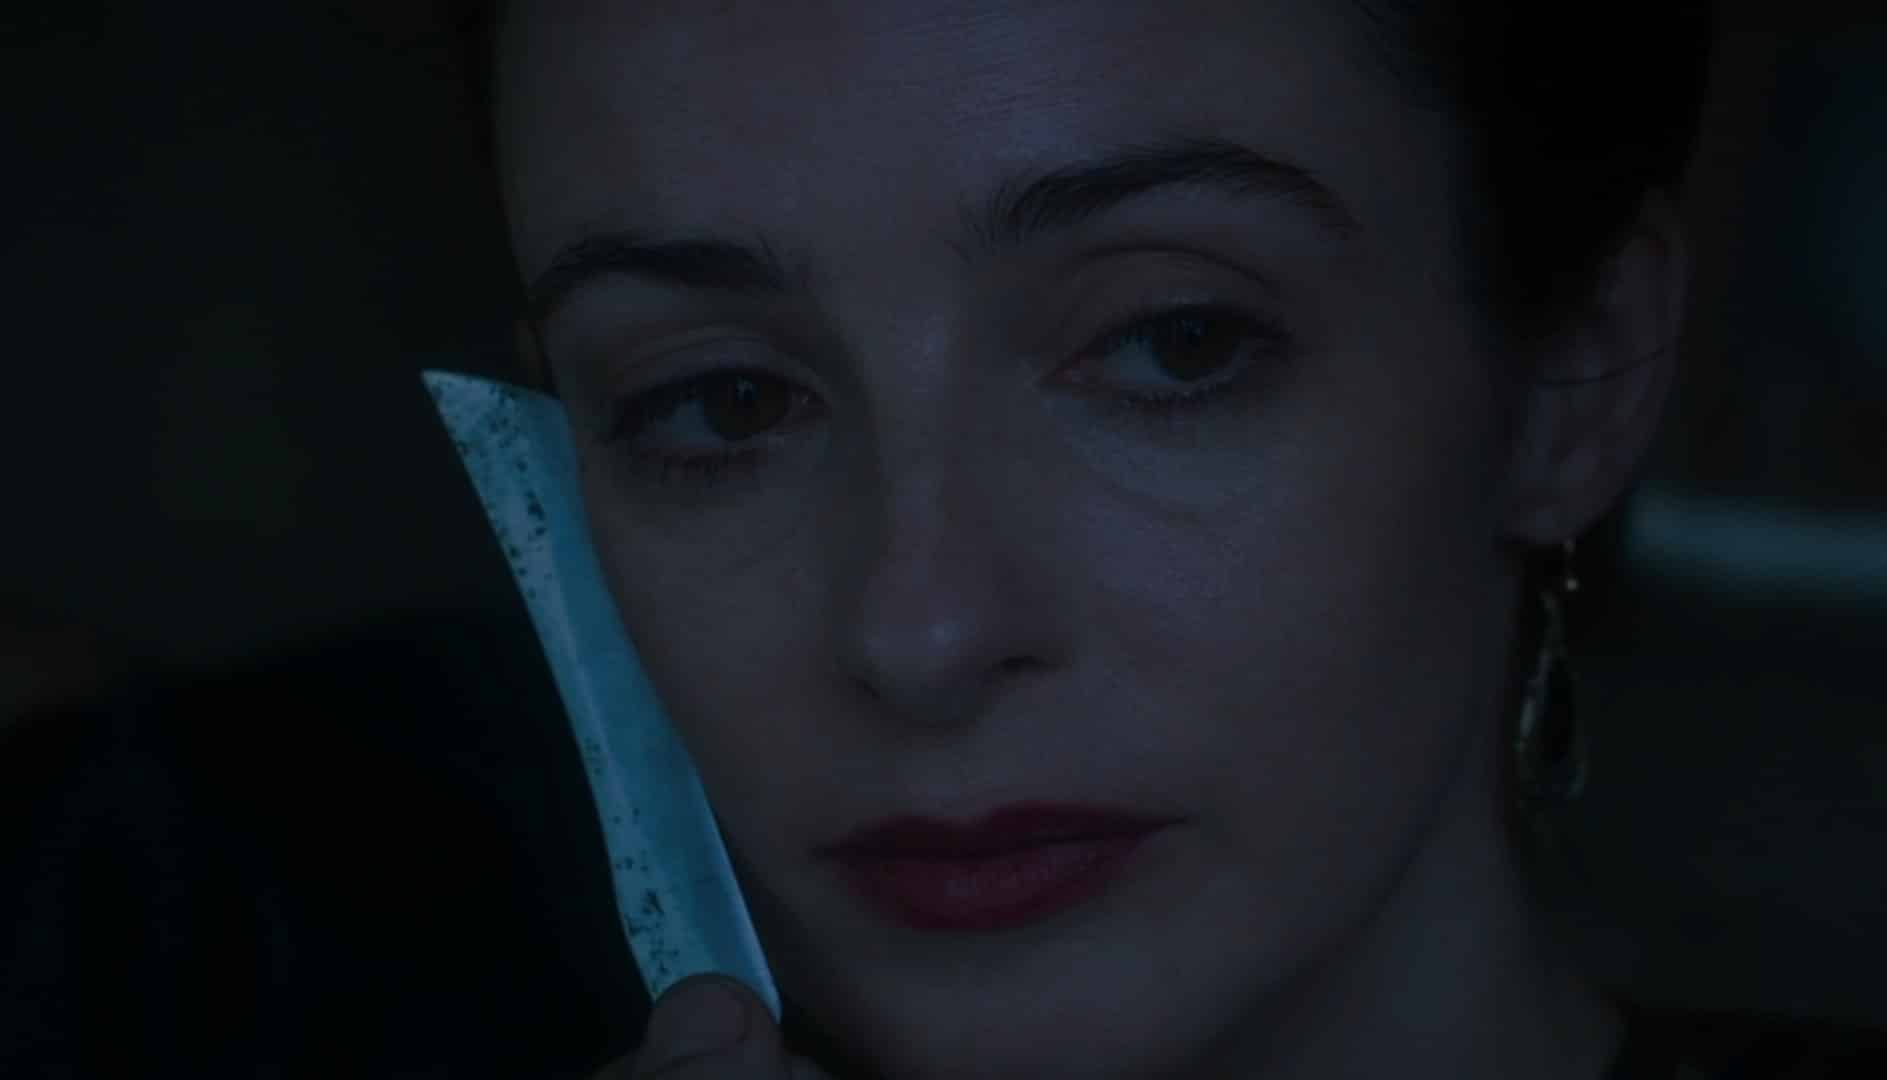 Amalia with the Beggar King's blade on her cheek